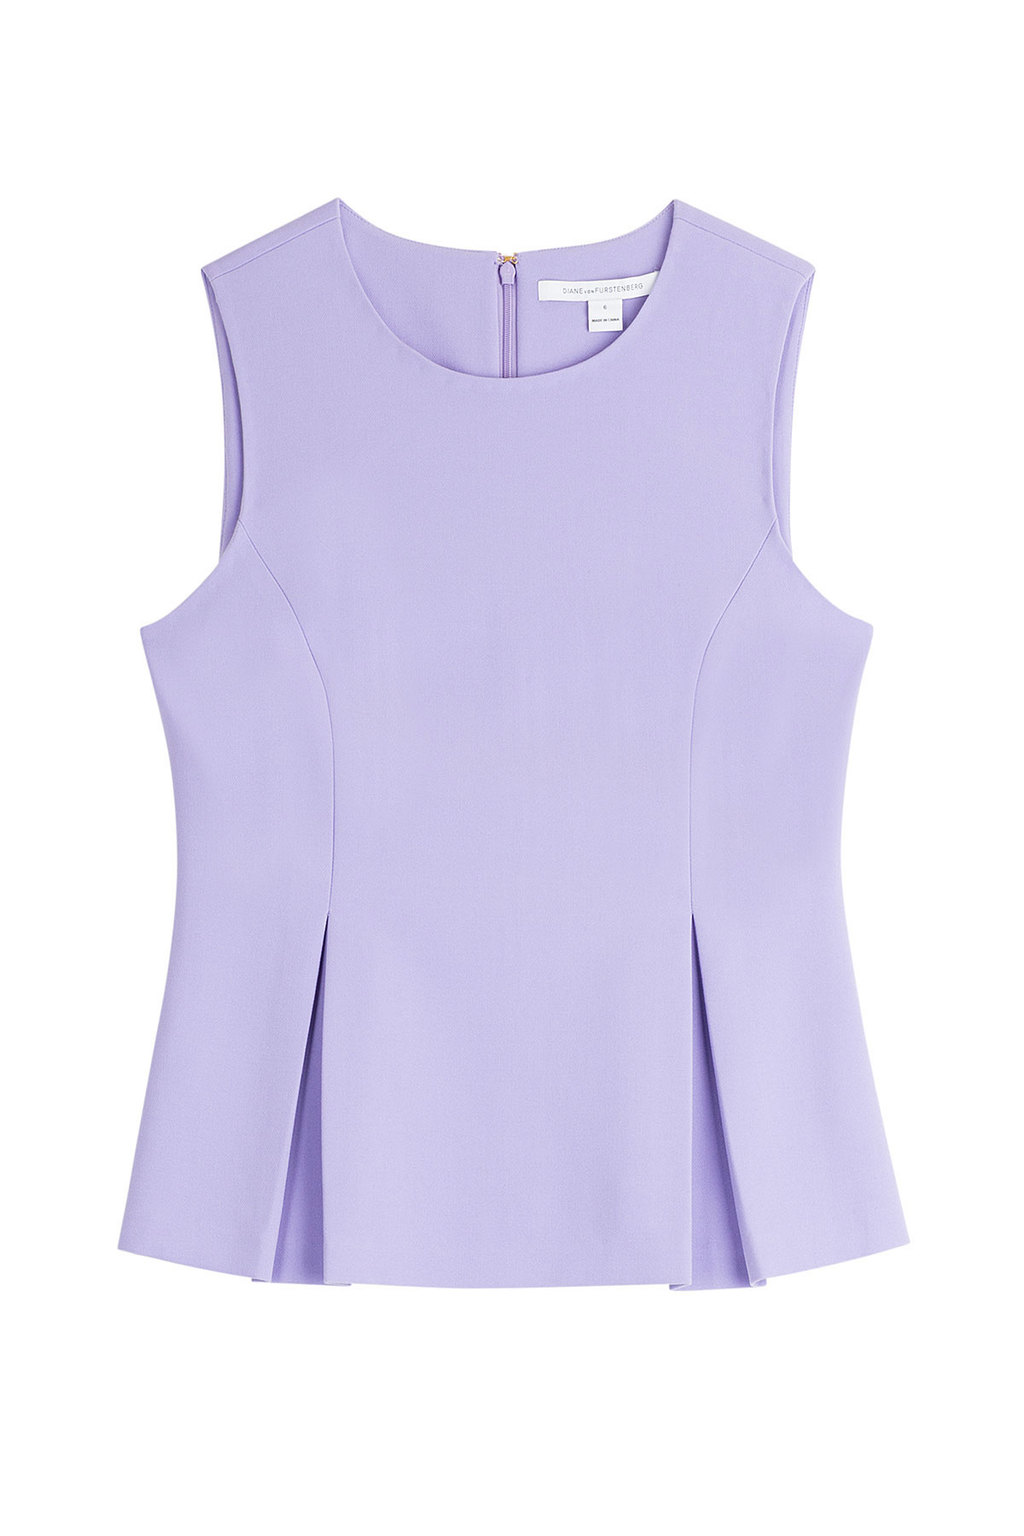 Shell With Inverted Pleats Purple - neckline: round neck; pattern: plain; sleeve style: sleeveless; waist detail: peplum waist detail; predominant colour: lilac; occasions: casual; length: standard; style: top; fibres: polyester/polyamide - stretch; fit: body skimming; hip detail: structured pleats at hip; sleeve length: sleeveless; texture group: crepes; pattern type: fabric; season: s/s 2016; wardrobe: highlight